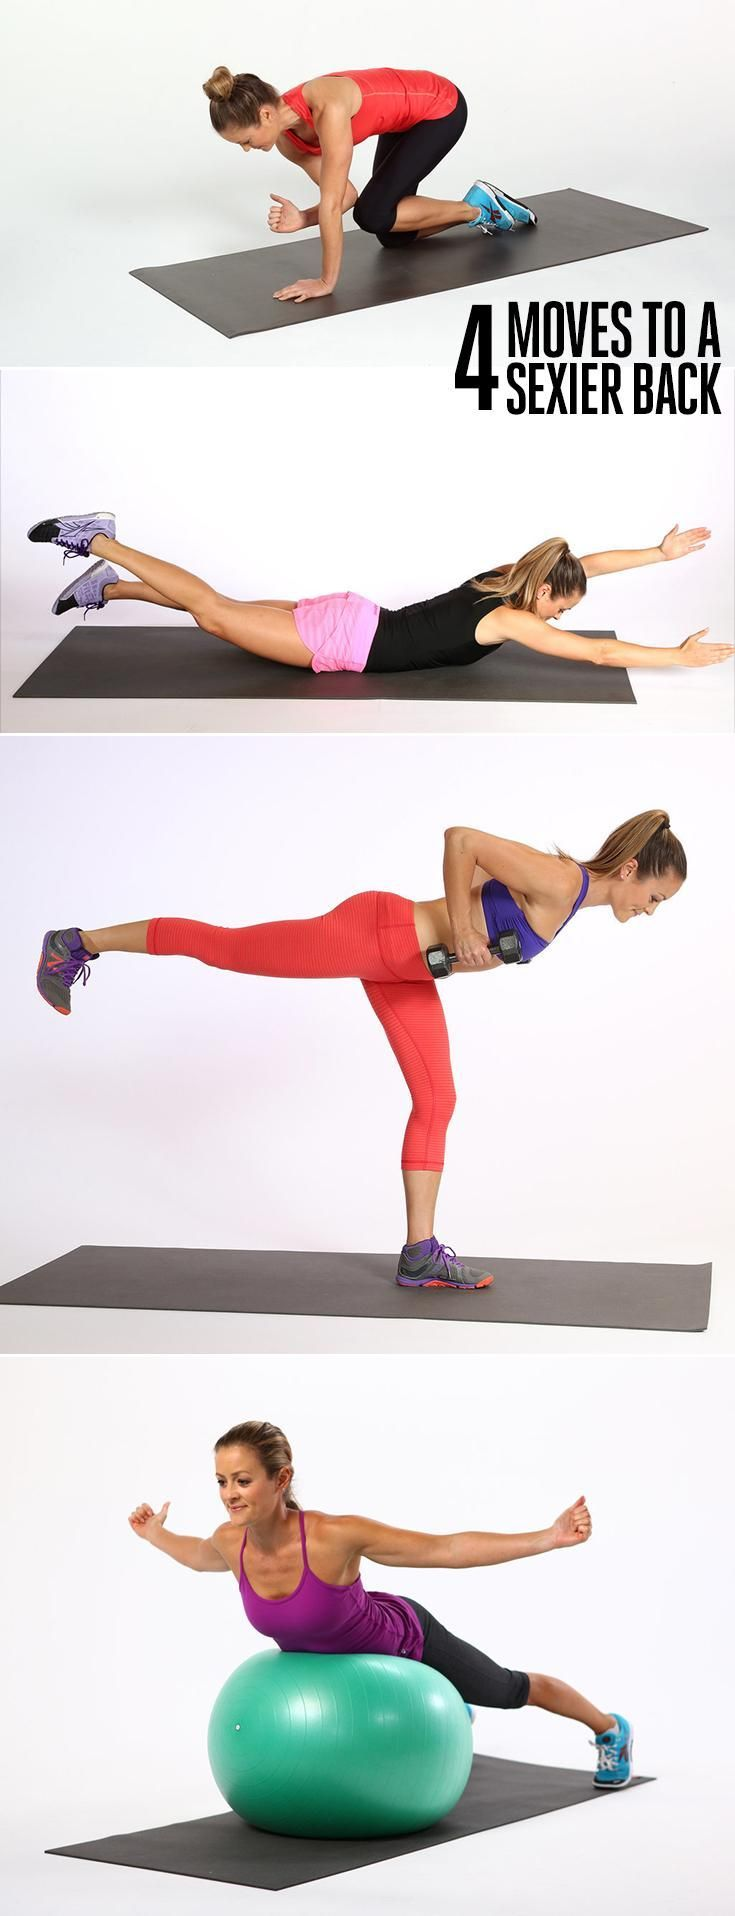 Score a Sexier Back With These 4 Moves